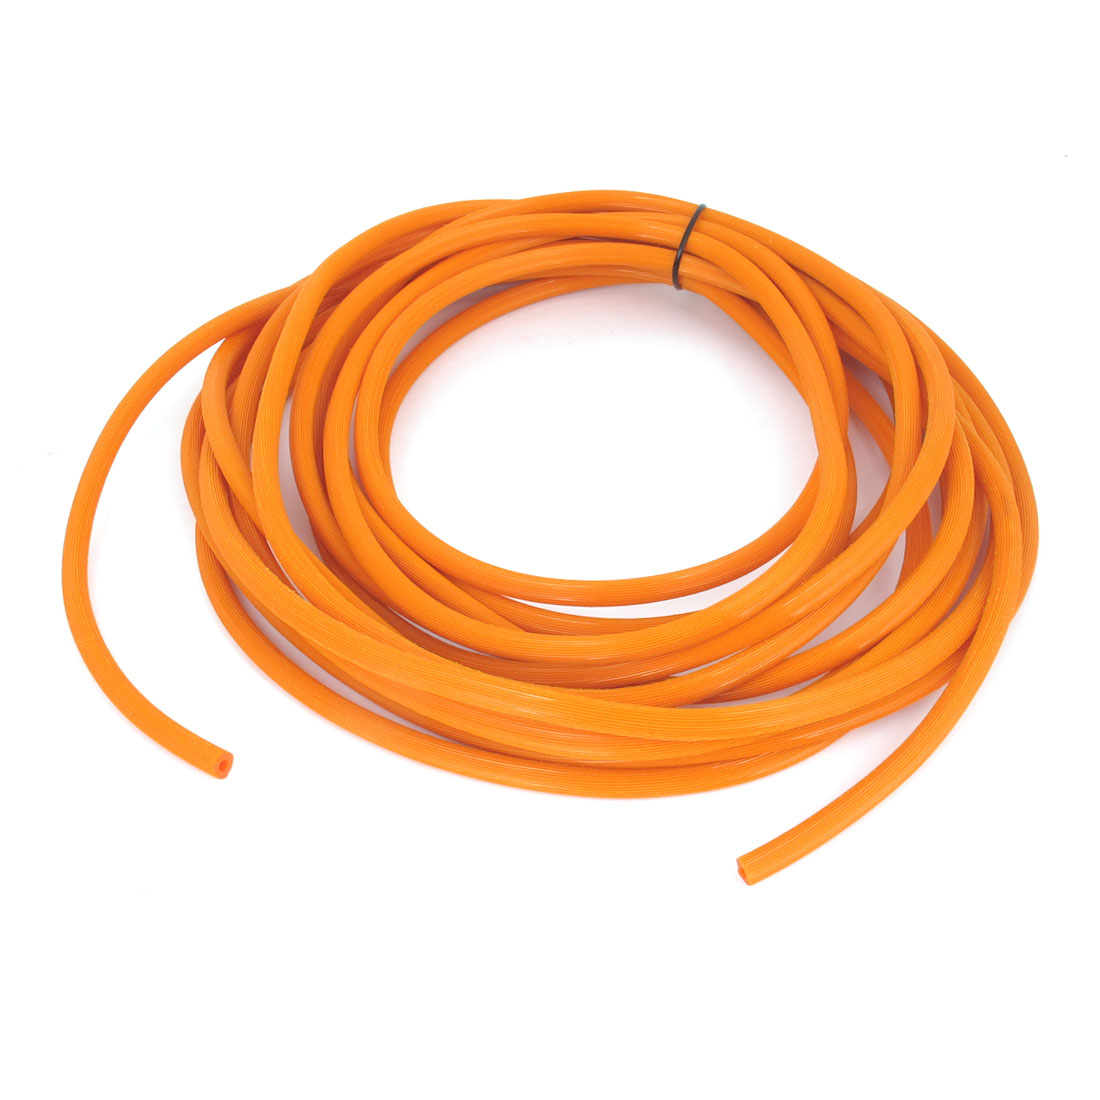 10m Length Aquarium Flexible Plastic Air Oxygen Circulate Pipe Orange